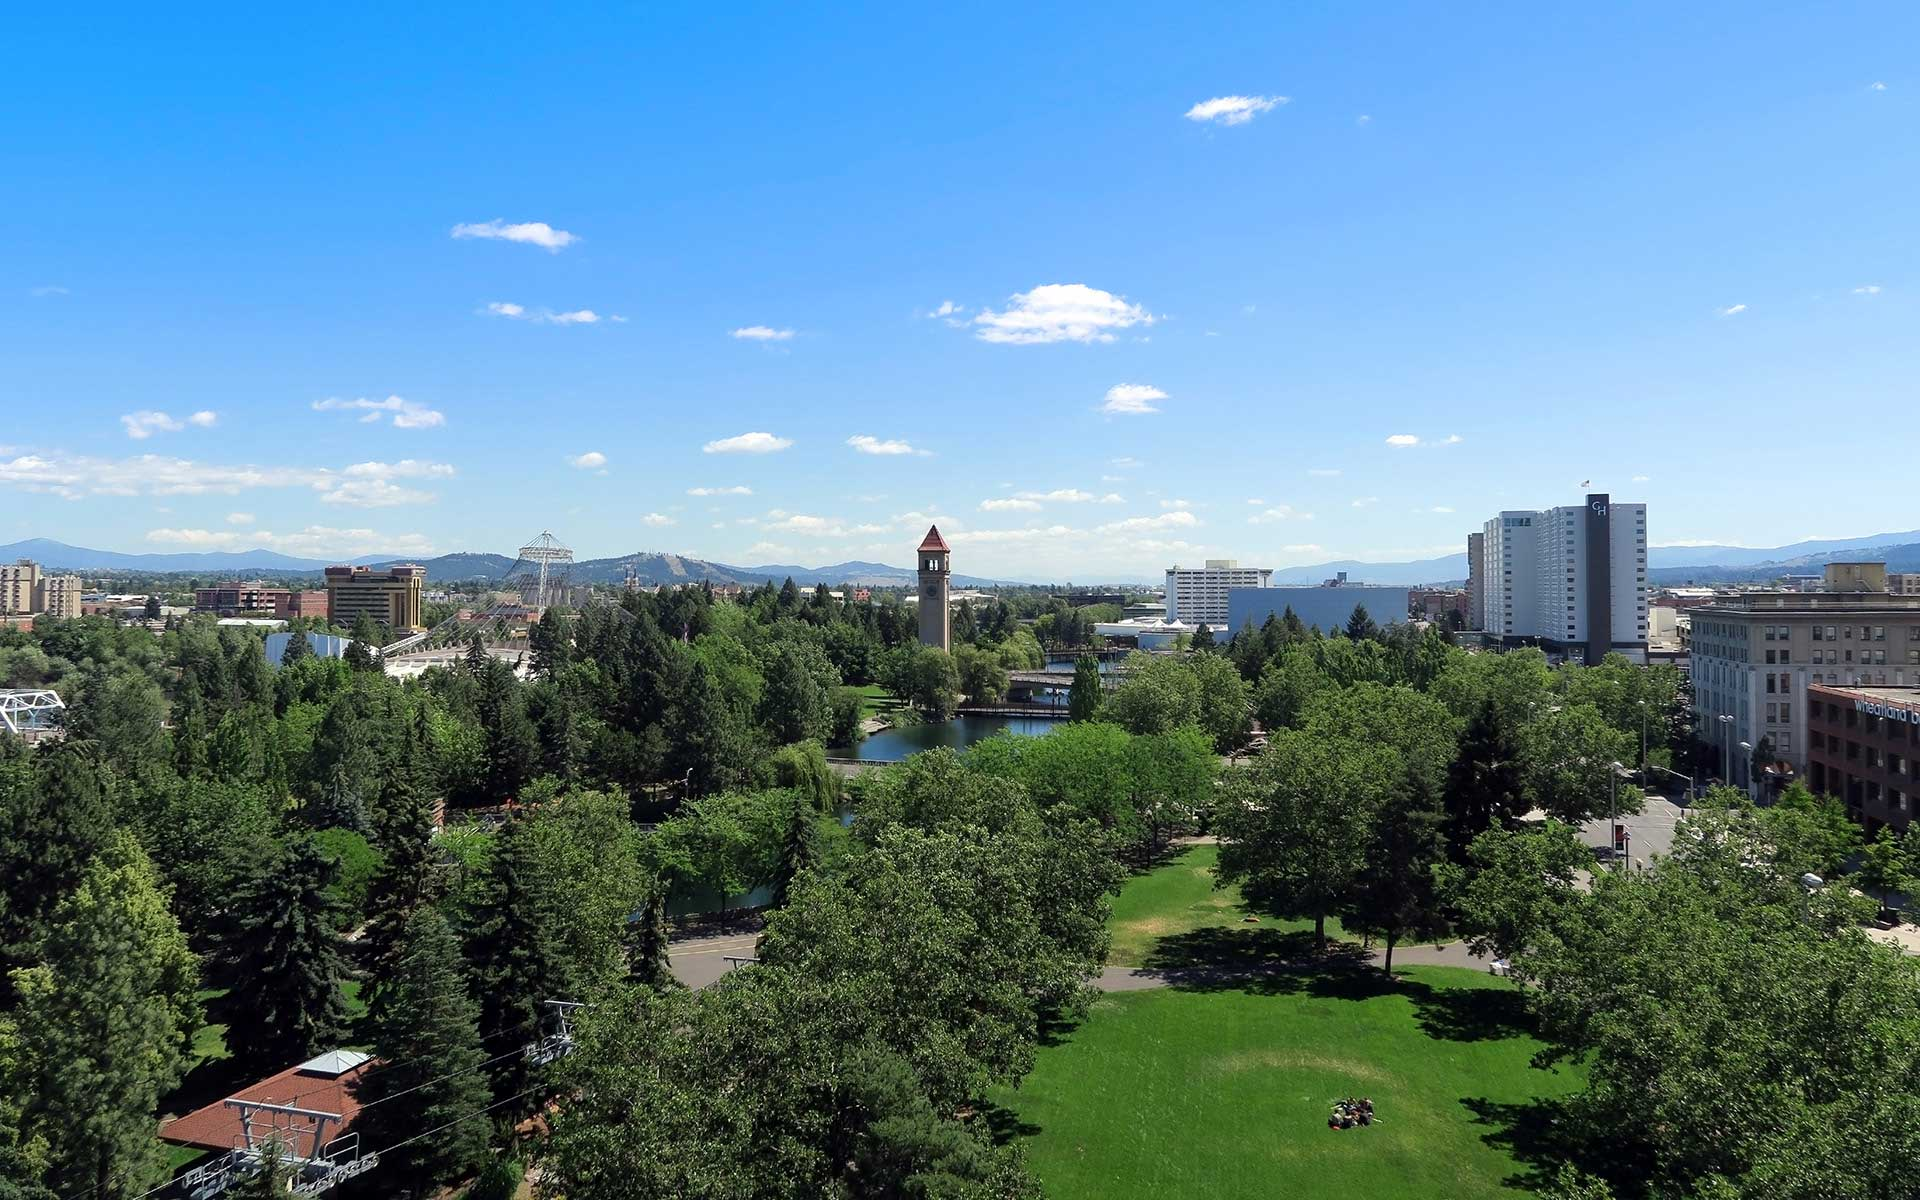 City of Spokane Washington